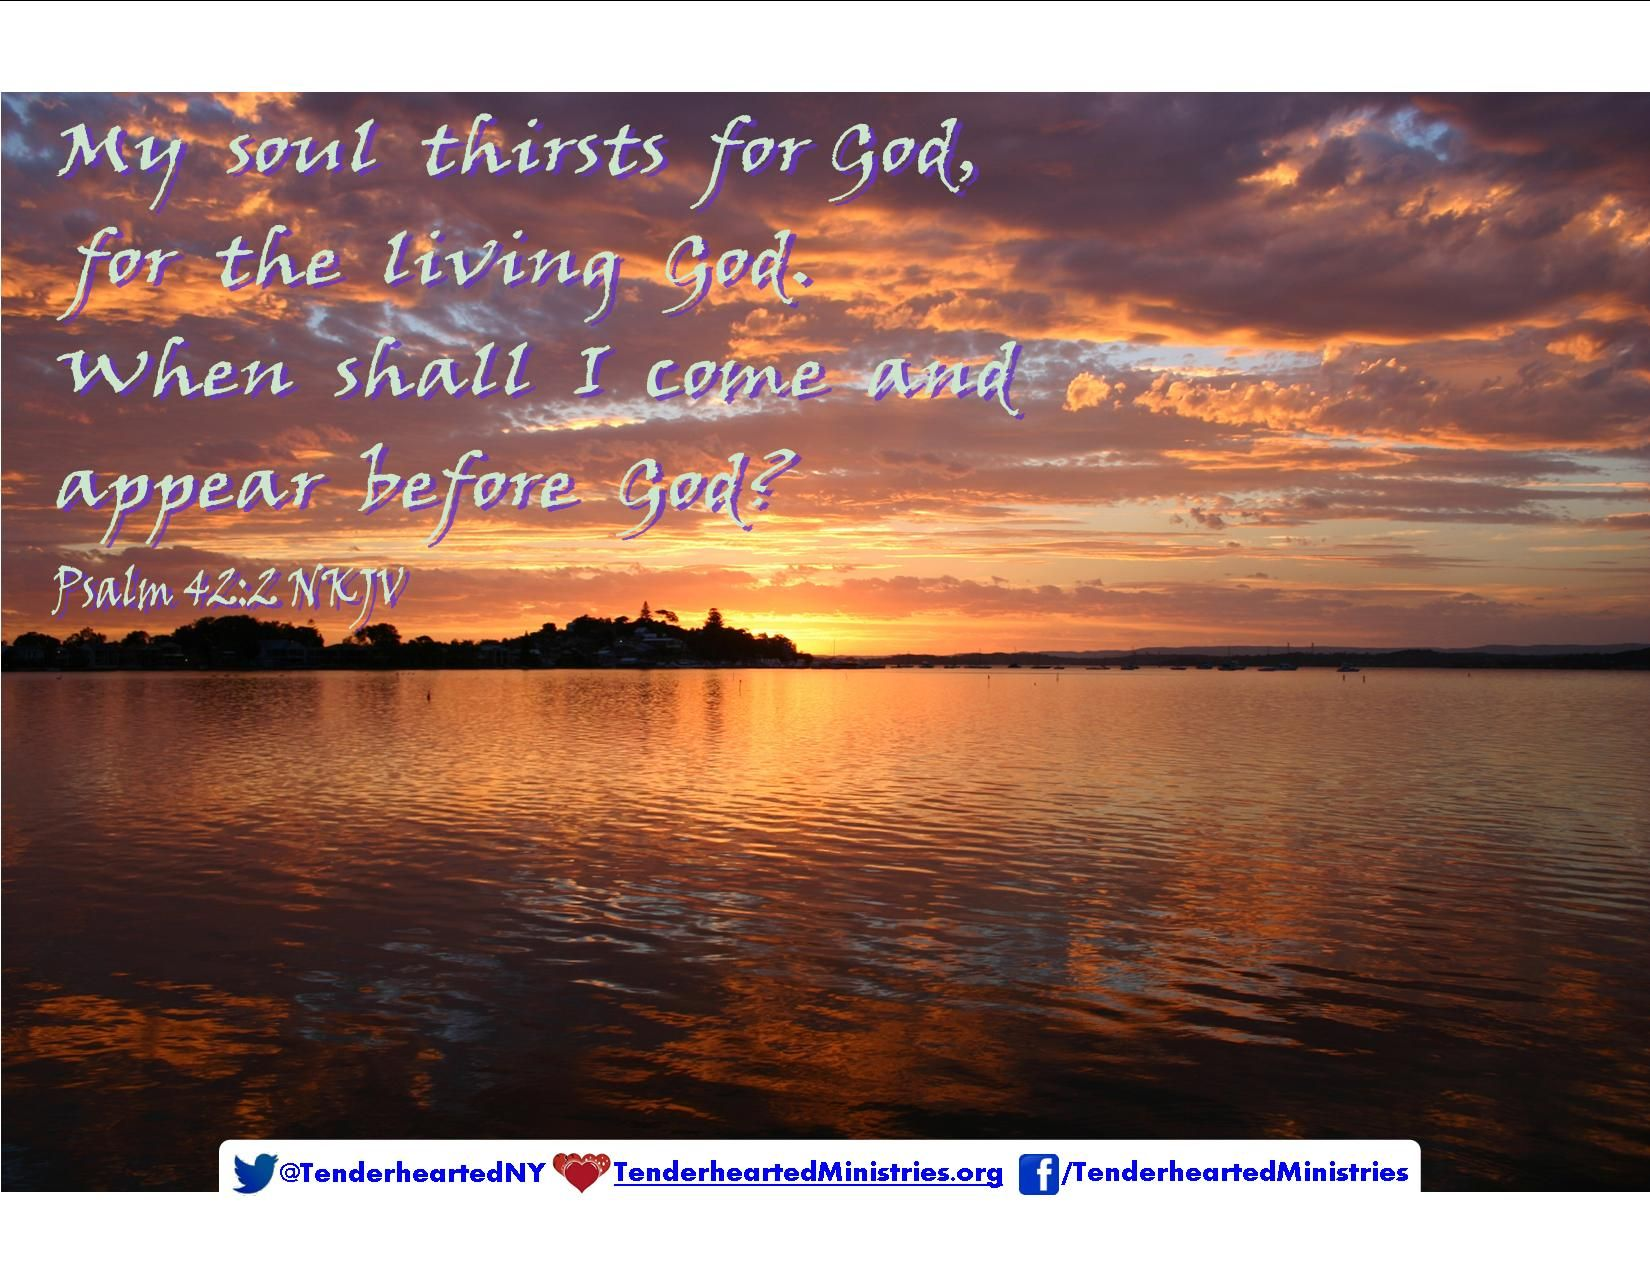 My soul thirsts for God, for the living God, when shall I come and appear before God?  Psalm 42:2 NKJV